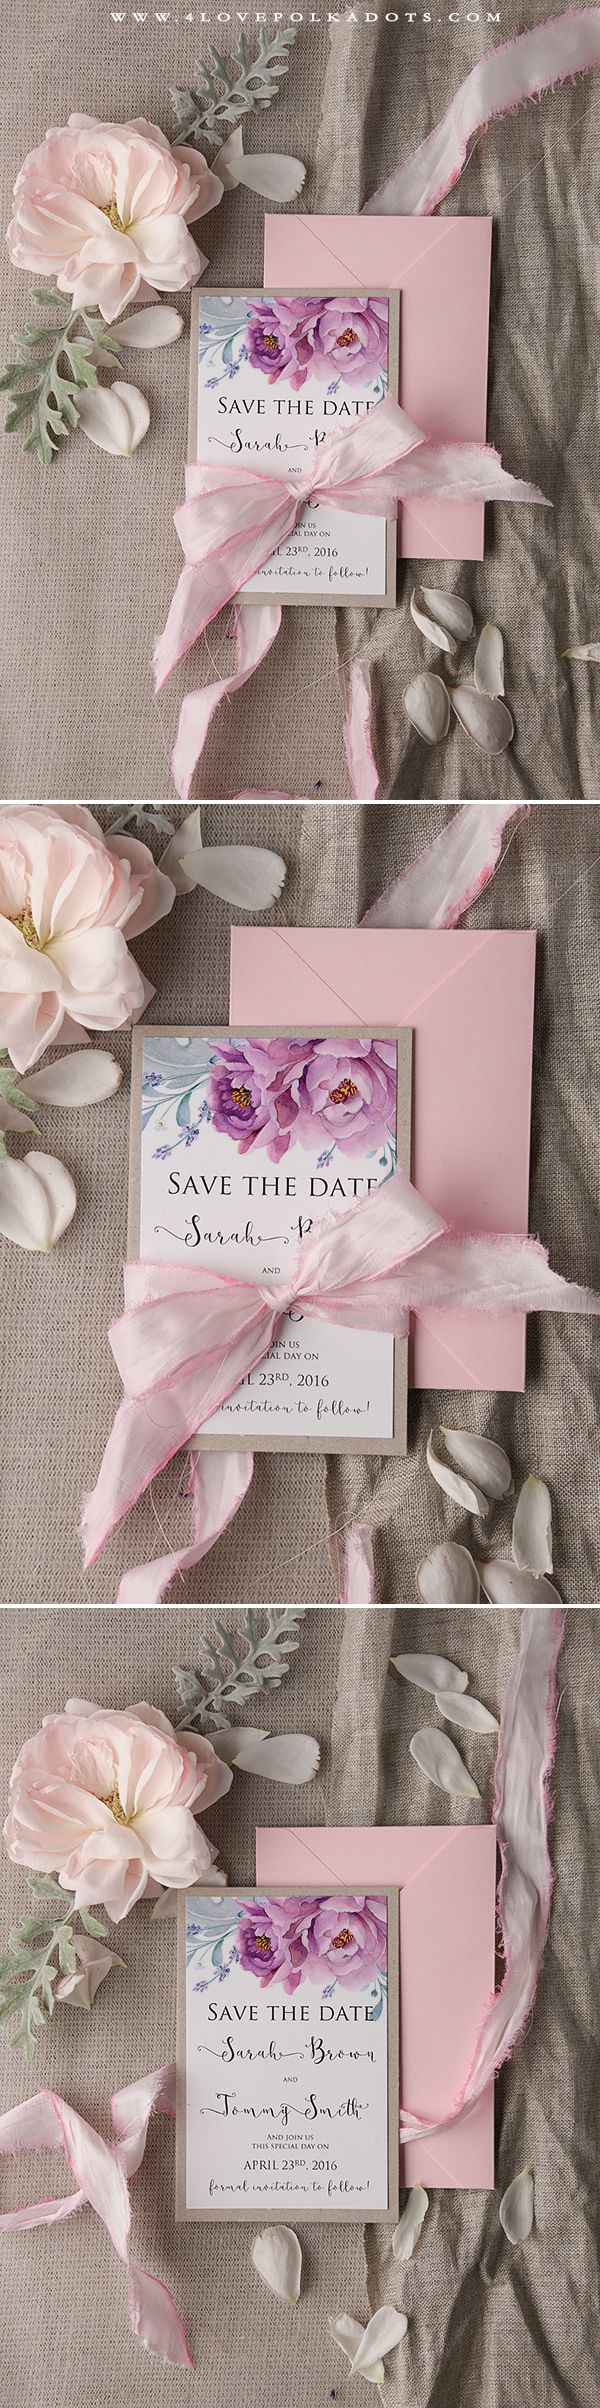 summer wedding invitation wording%0A Wedding Save the Date Card with Flowers  romantic  summerwedding  flowers     Romantic Wedding InvitationsWedding Invitation WordingFoil